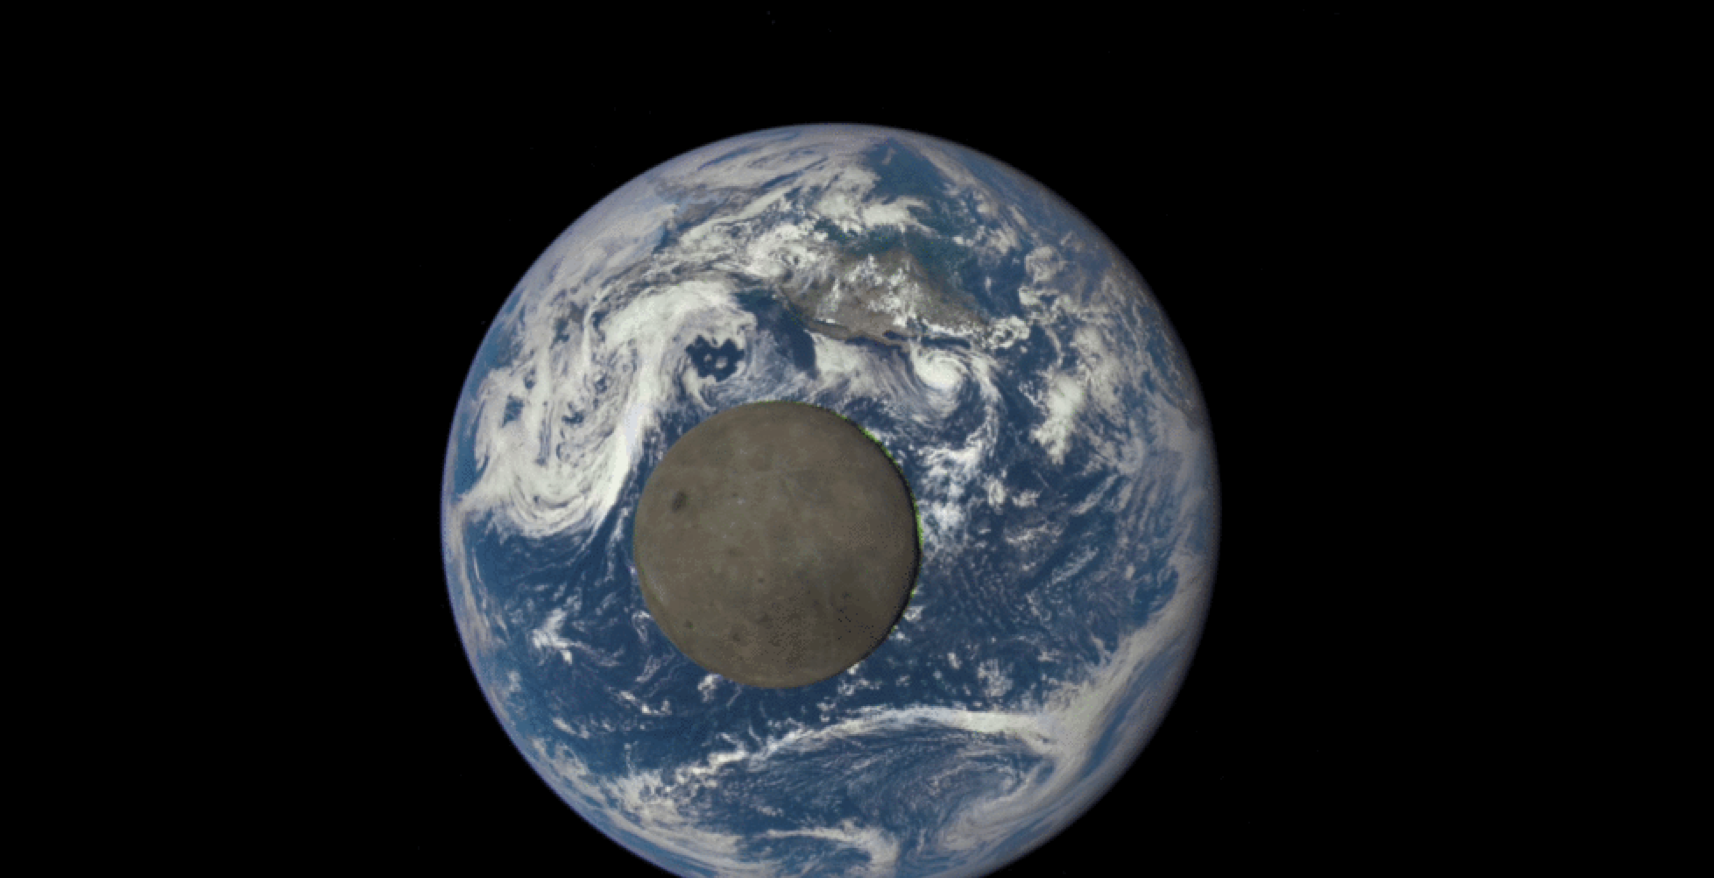 NASA captures the dark side of the moon with the Deep Space Observatory.